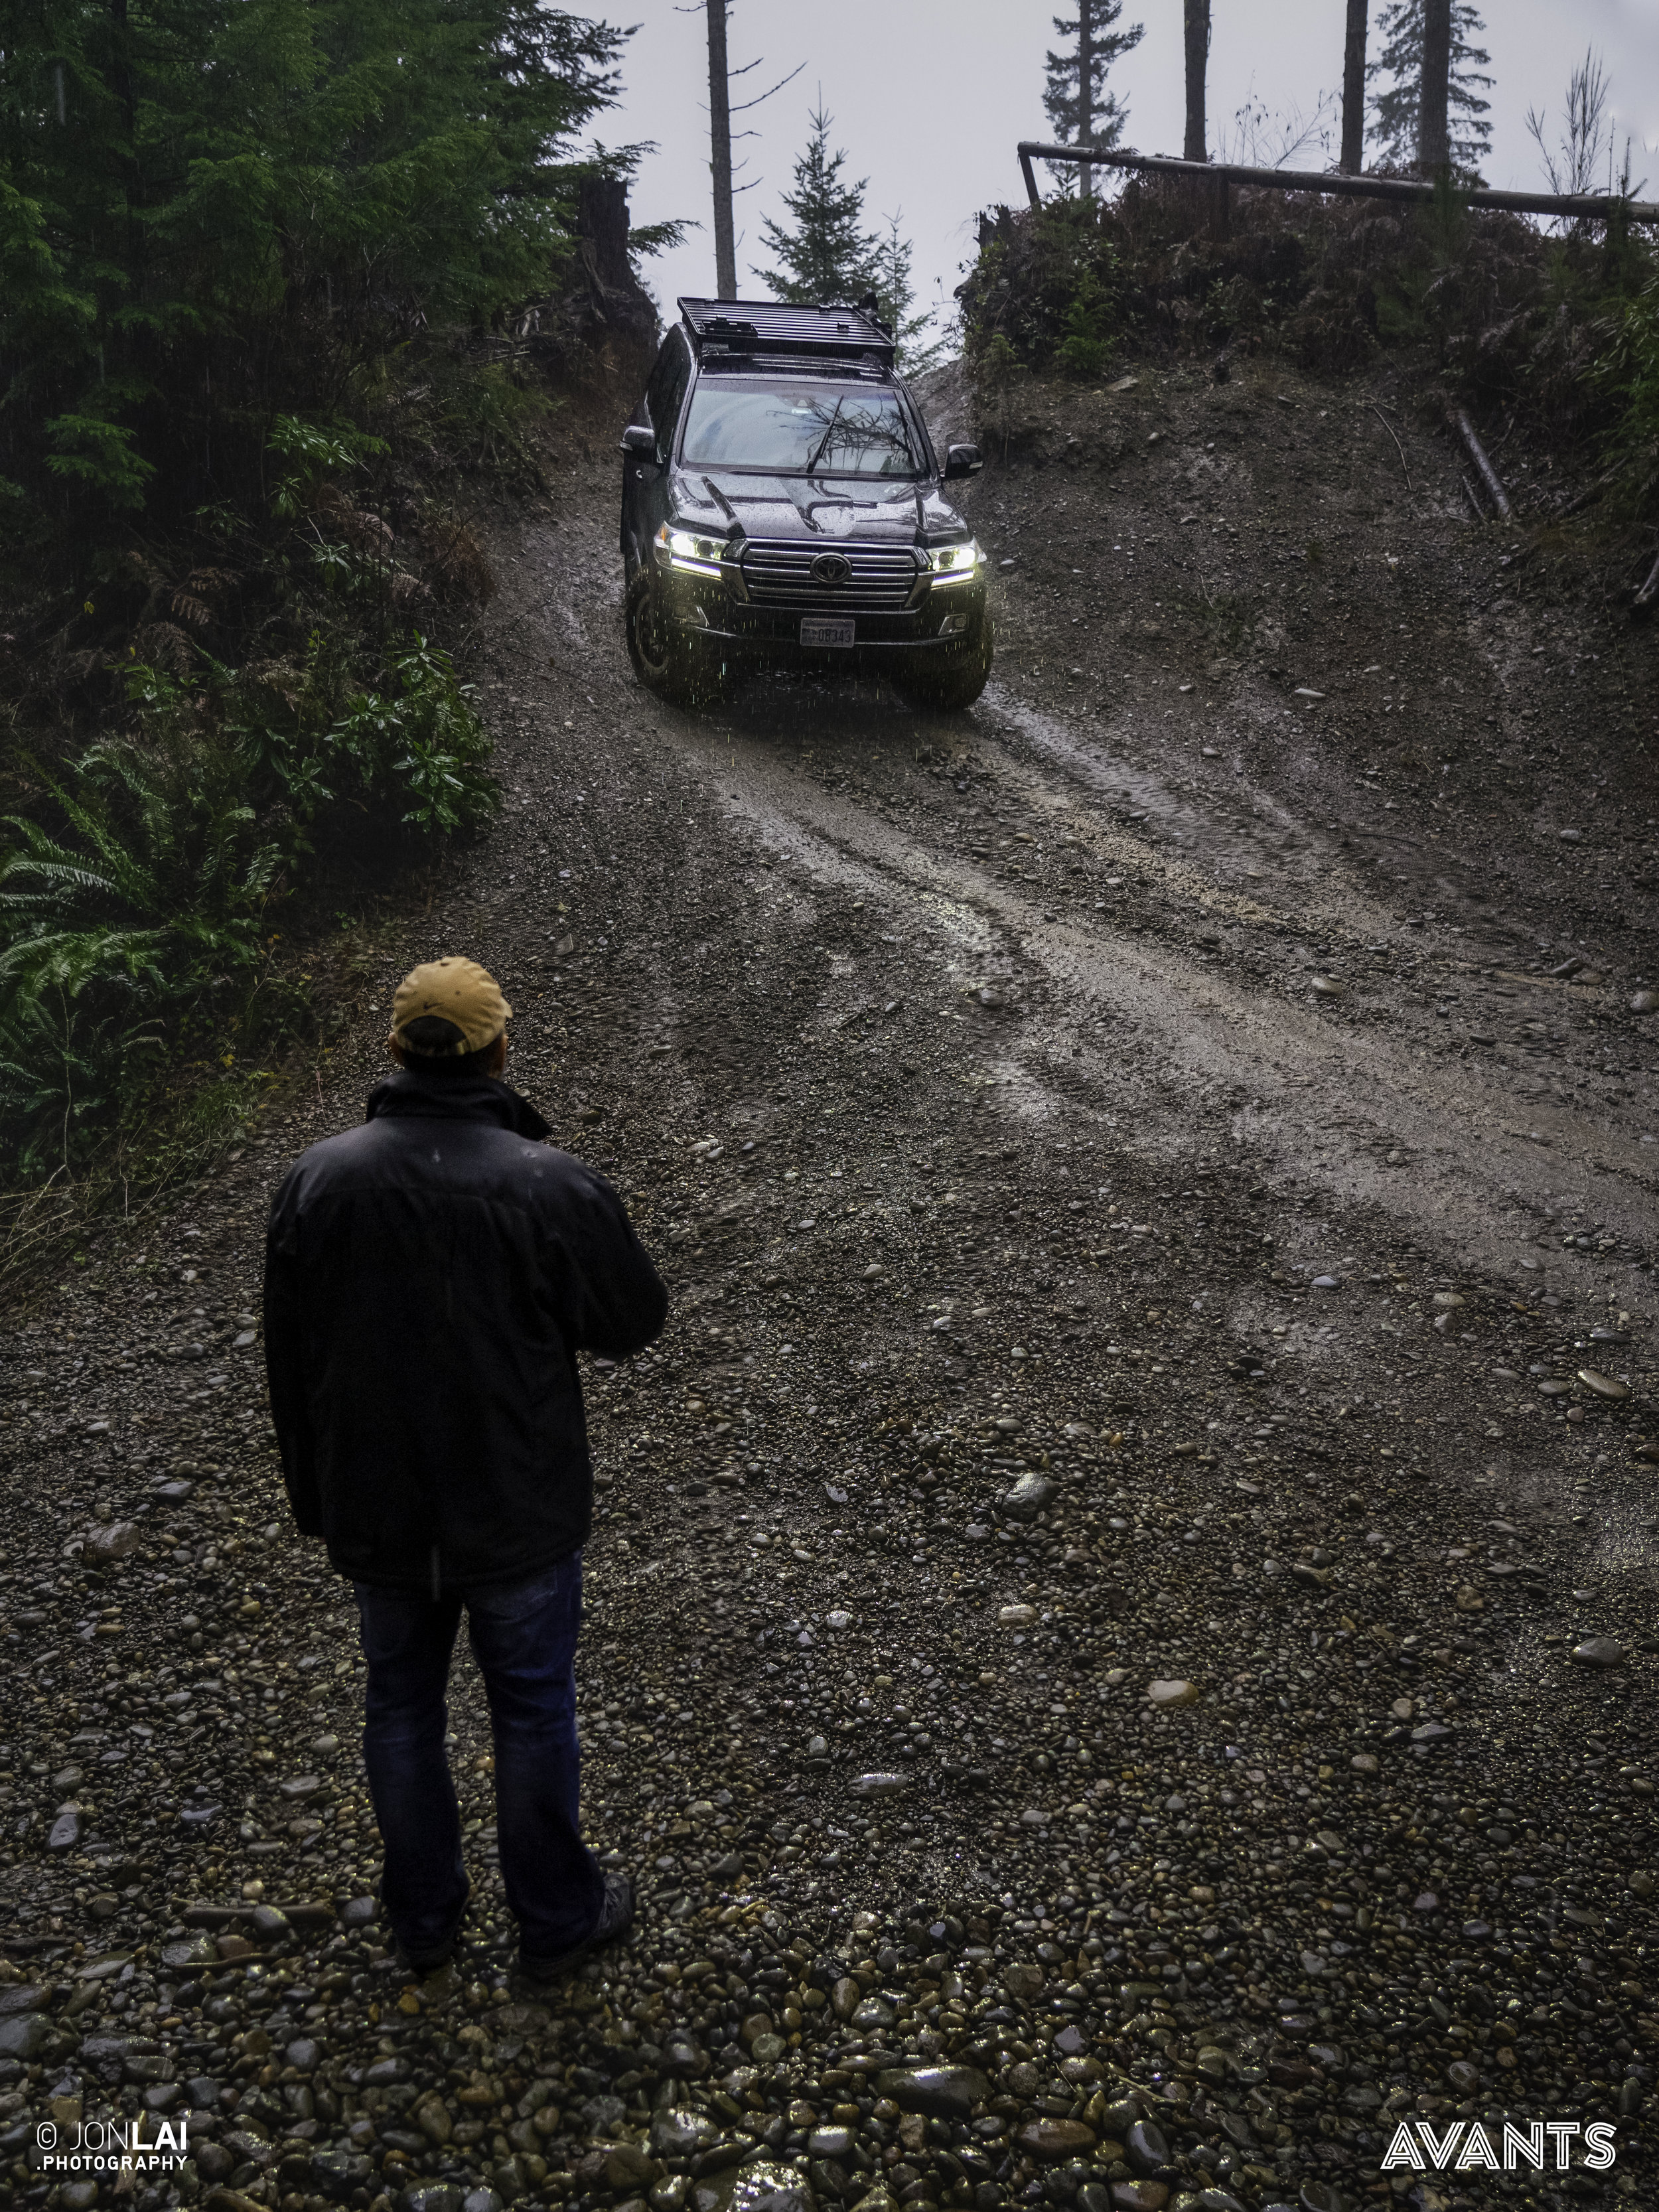 AVANTS_OffRoad-2257-Edit.jpg